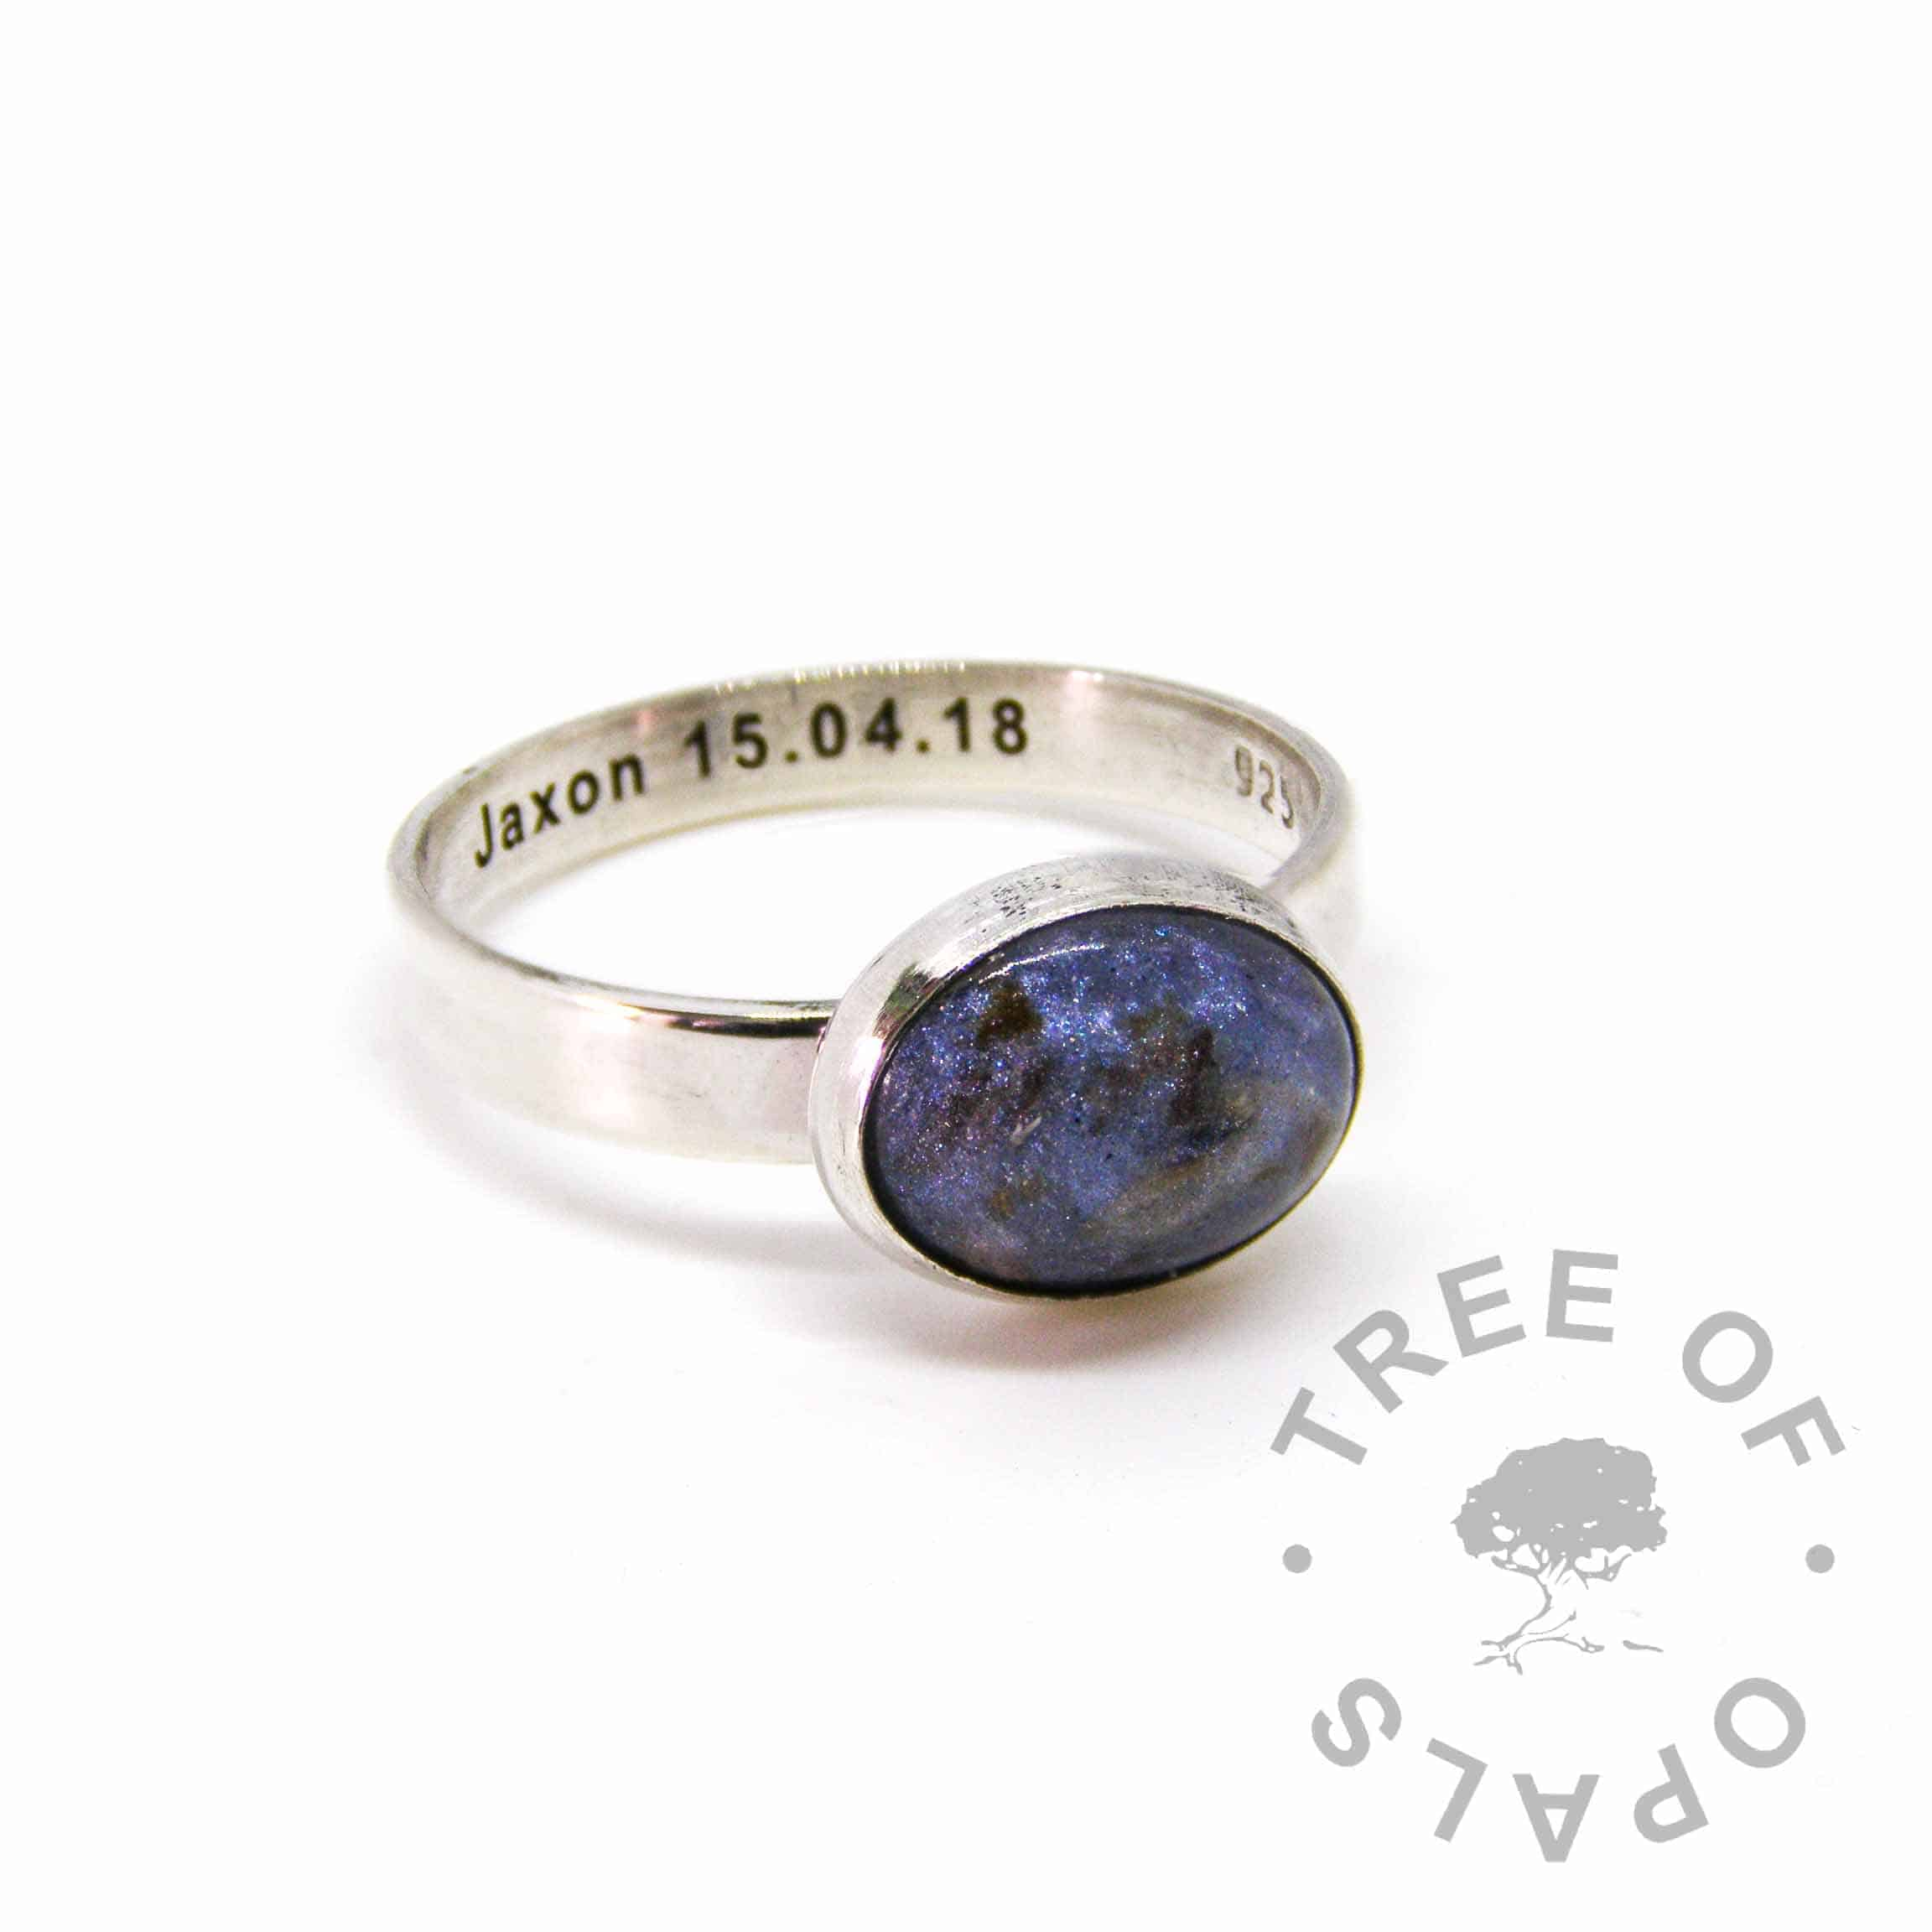 Aegean blue umbilical cord ring, 3mm shiny band engraved with a name and date of birth. Handmade in solid sterling silver